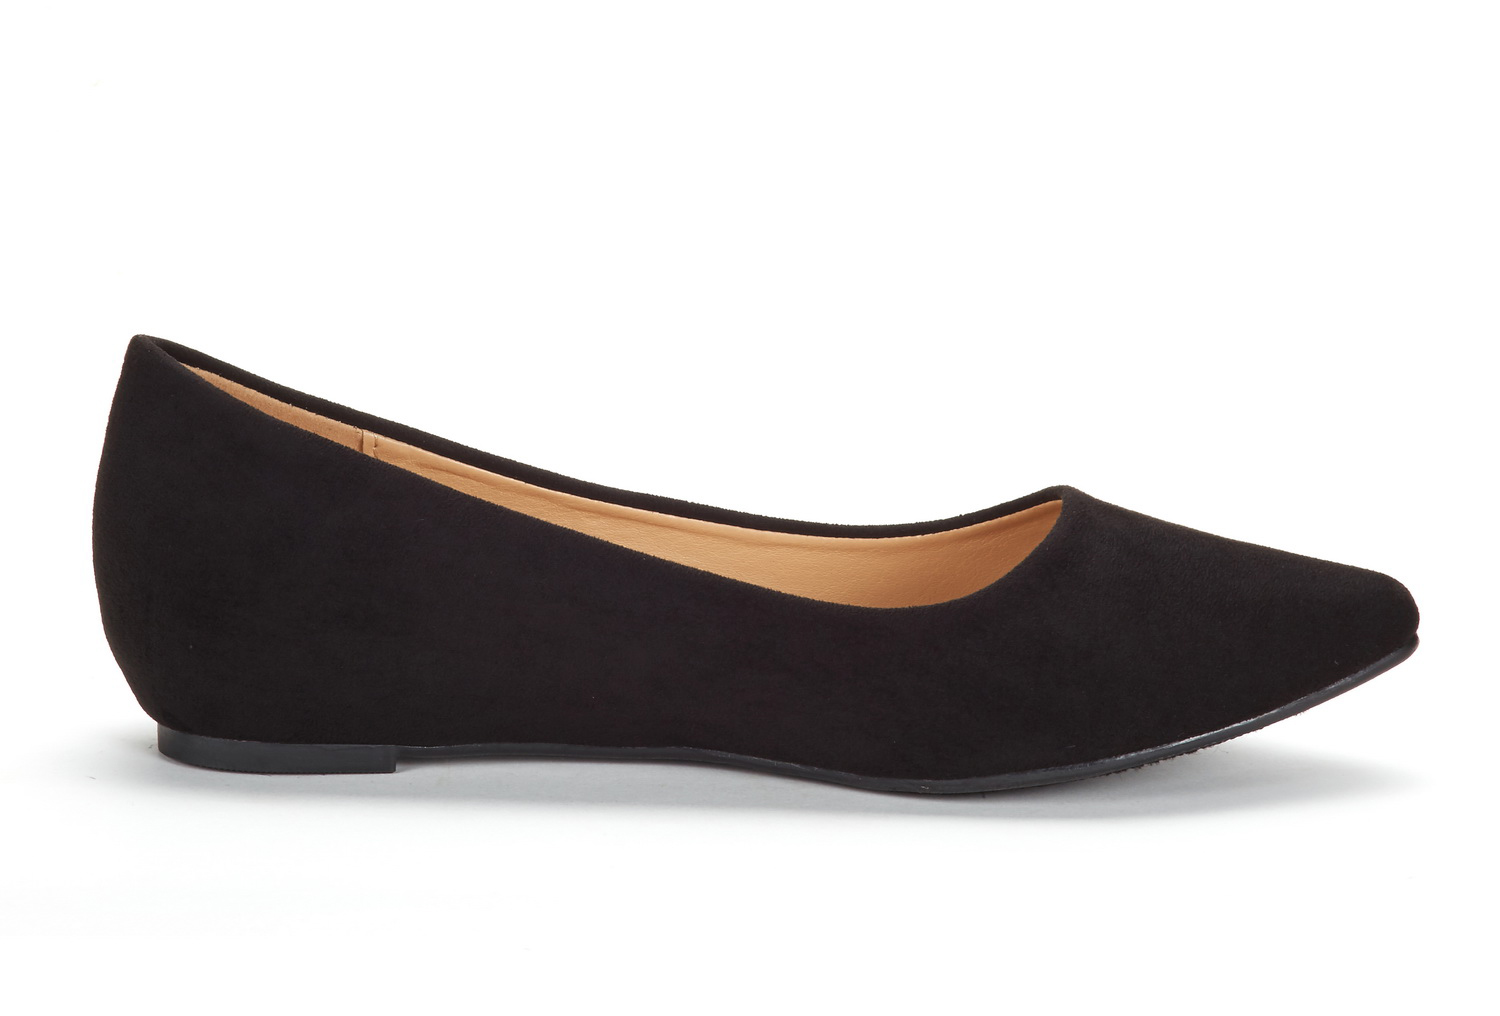 DREAM-PAIRS-Women-Low-Wedge-Flats-Ladies-Pointed-Toe-Slip-On-Comfort-Flat-Shoes thumbnail 60